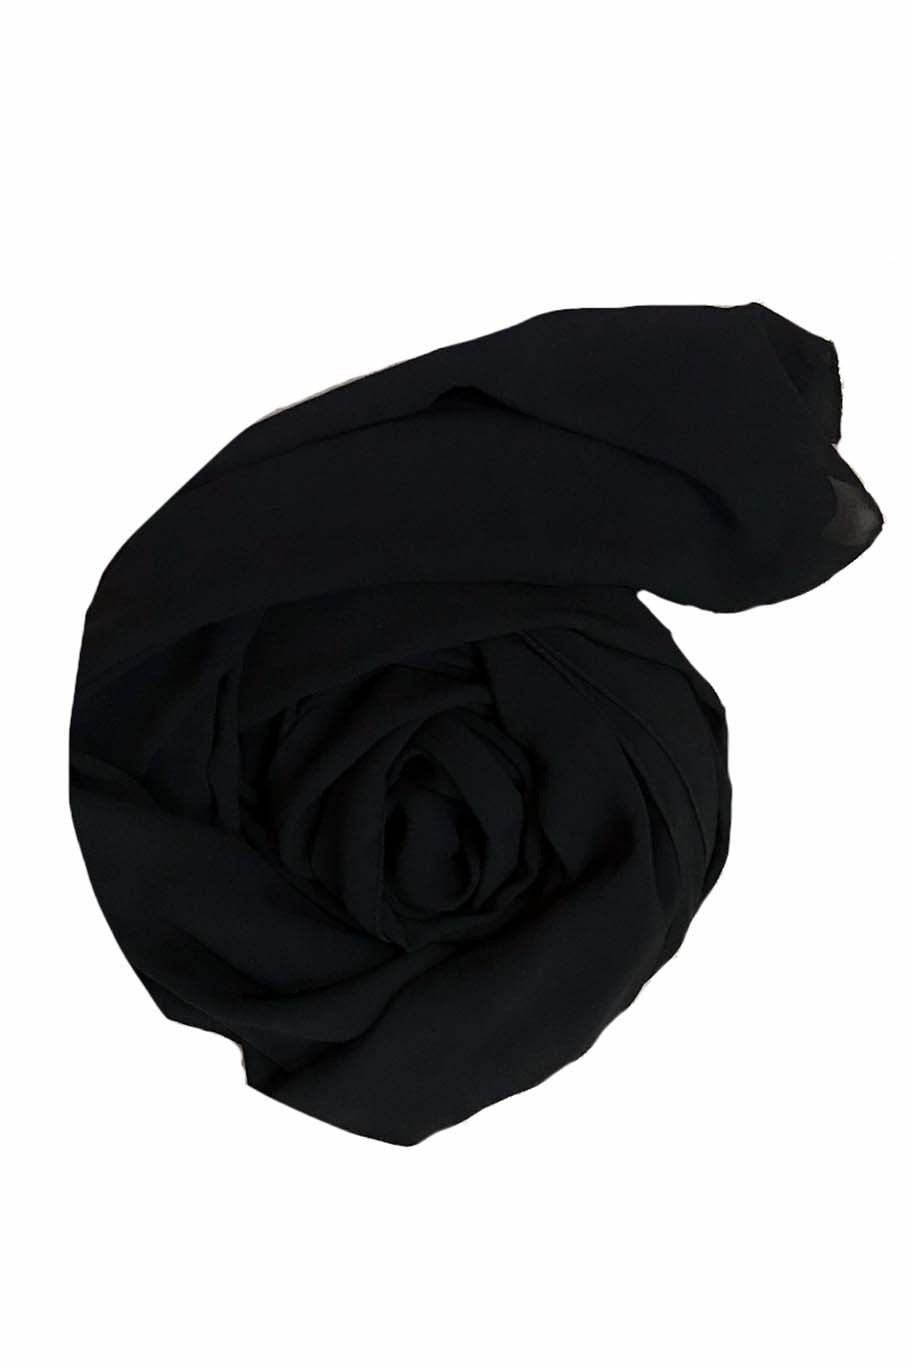 Roro Black Chiffon Hijab - Chiffon Hijab - The Modest Look